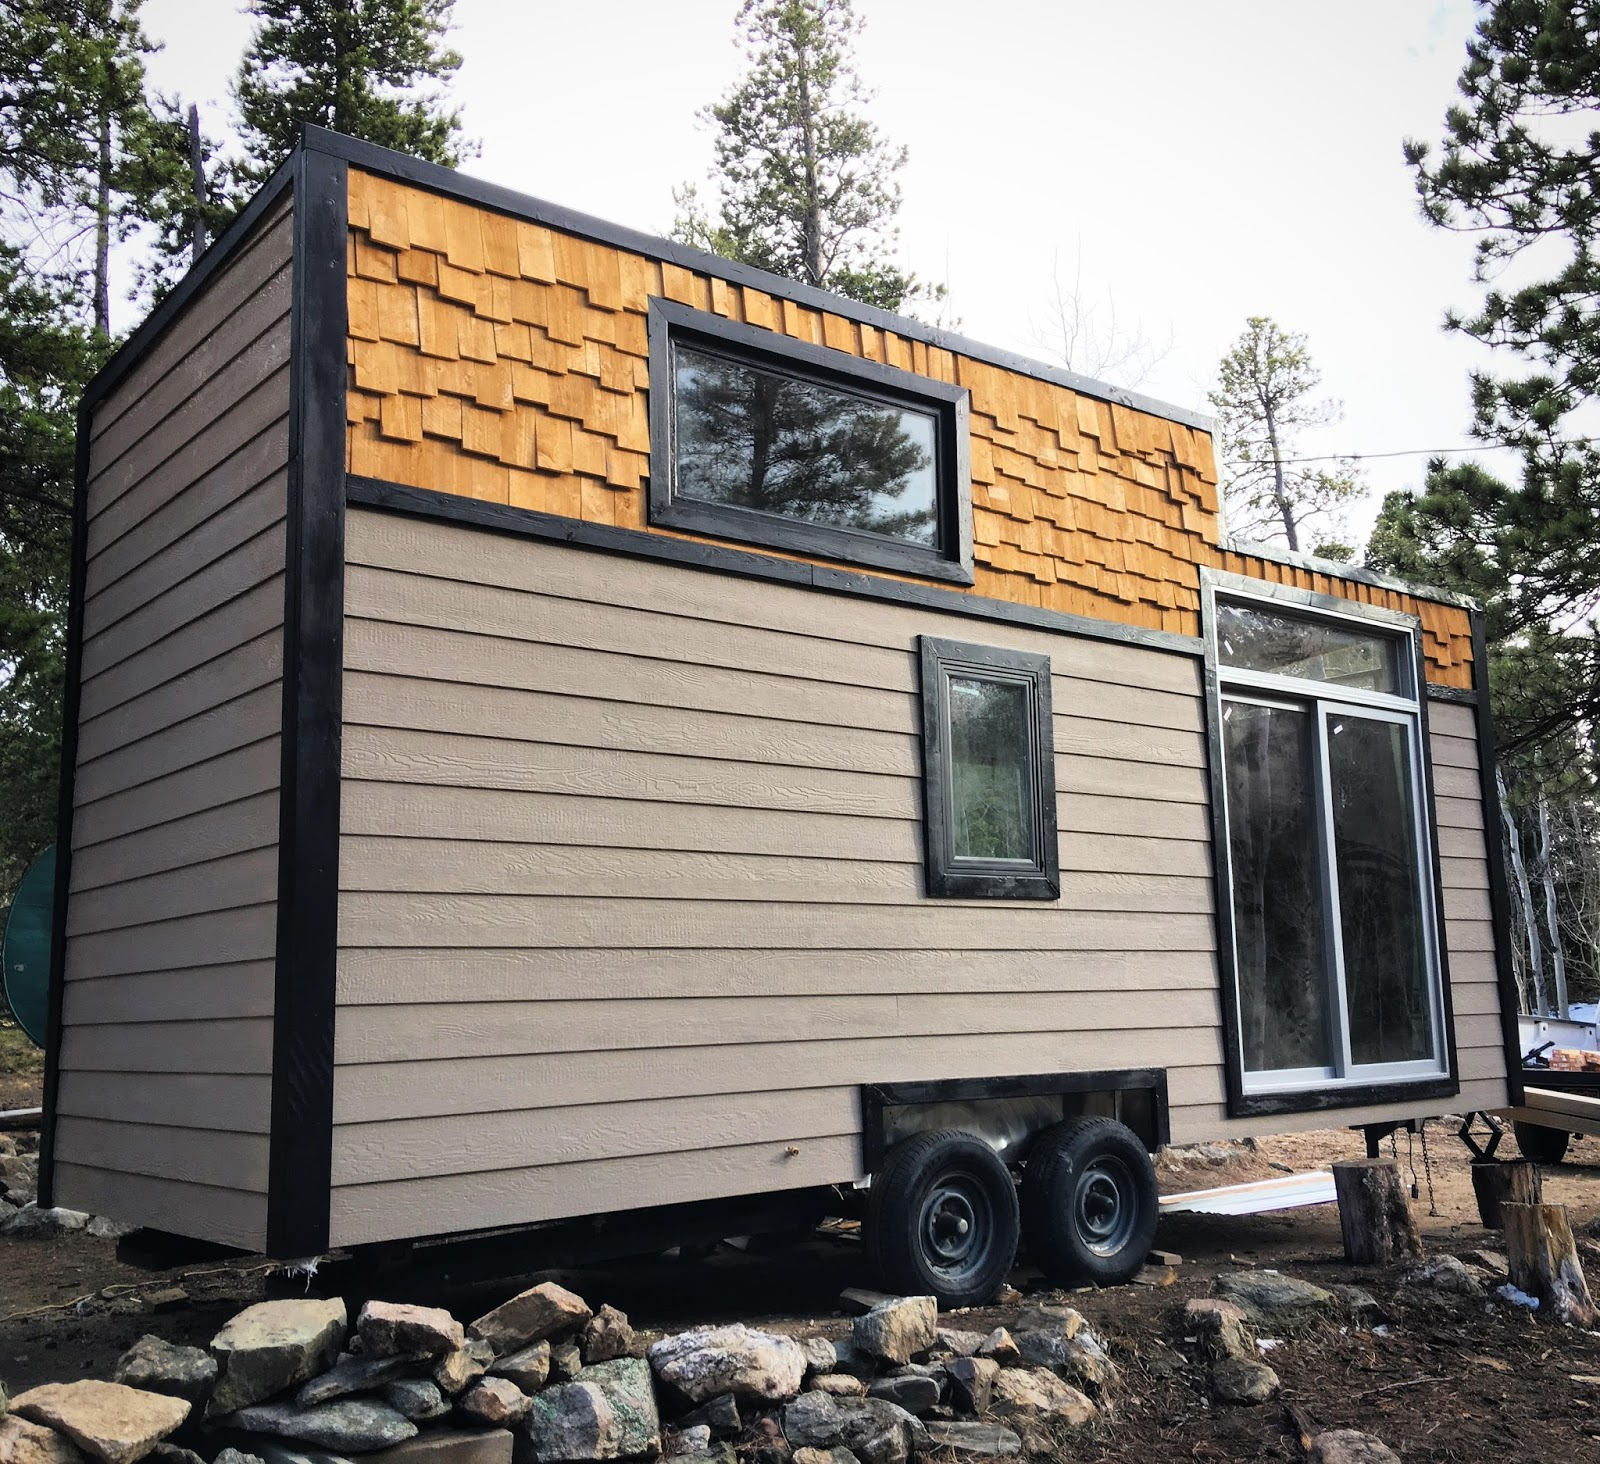 8 Staycation Worthy Tiny Homes For Sale: TINY HOUSE TOWN: Custom Tiny House In Denver